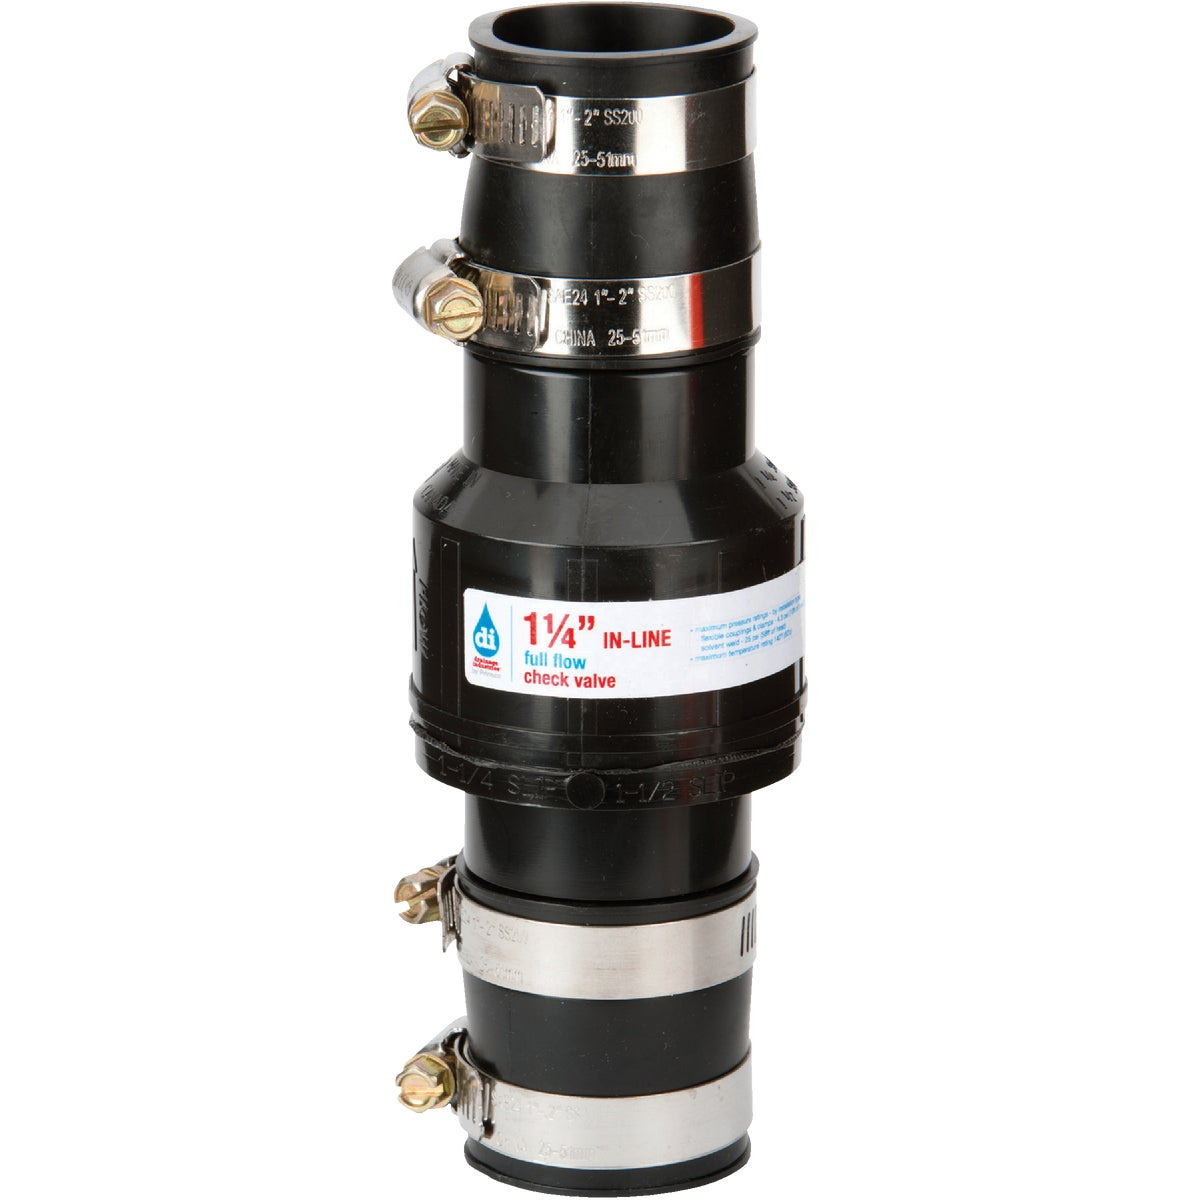 "1-1/4"" CHECK VALVE - 2460 by Drainage Industries"